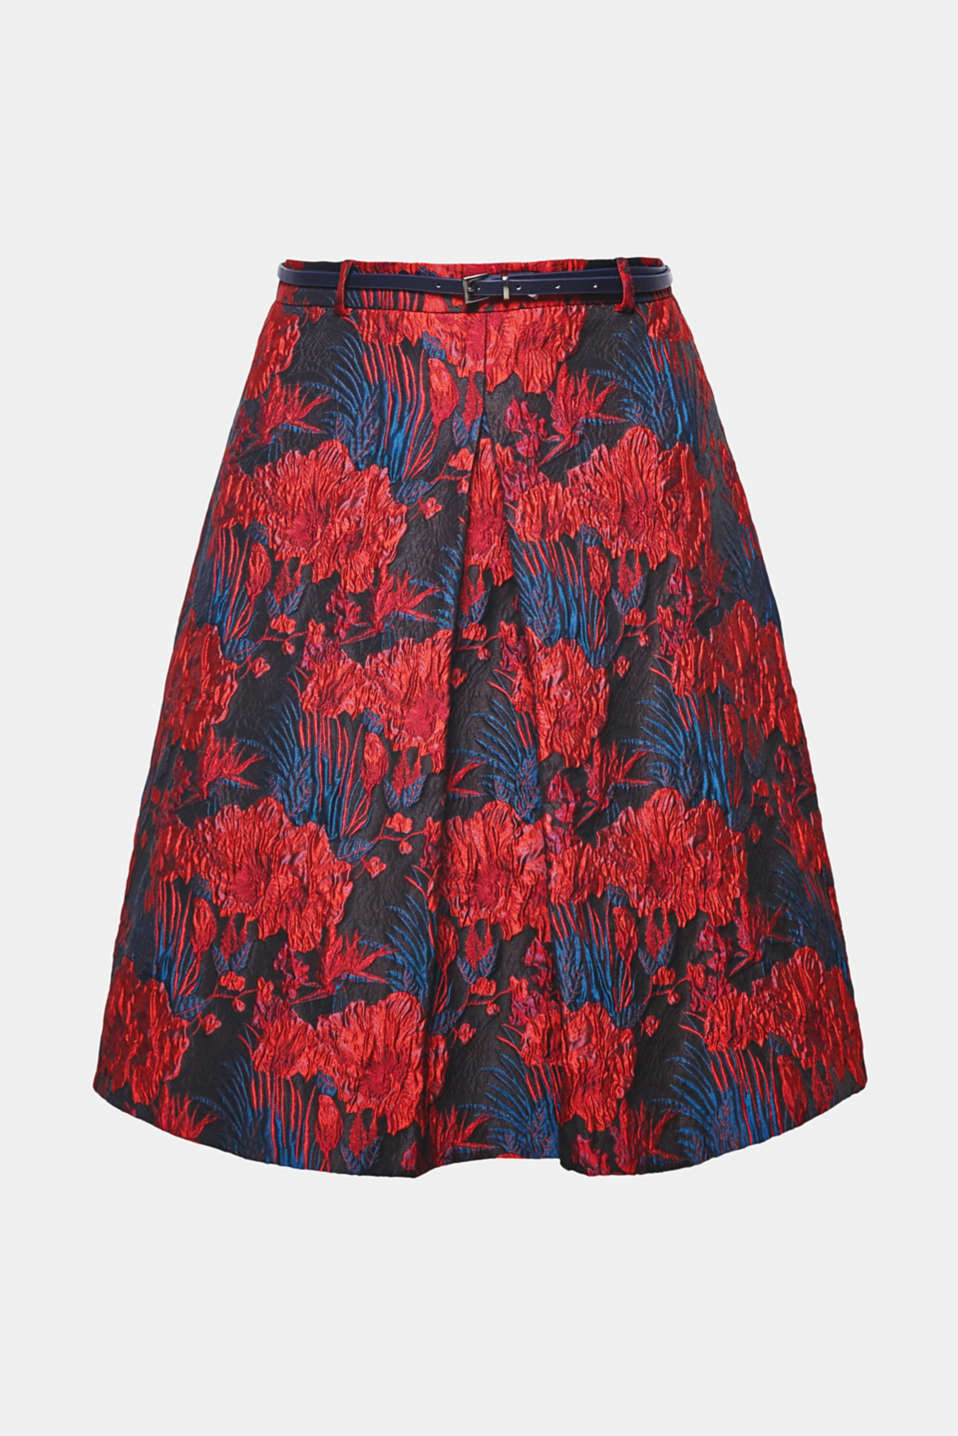 Elaborate jacquard flowers with a relief texture and a subtle sheen give this slightly flared skirt with a central front pleat its exclusive flair!